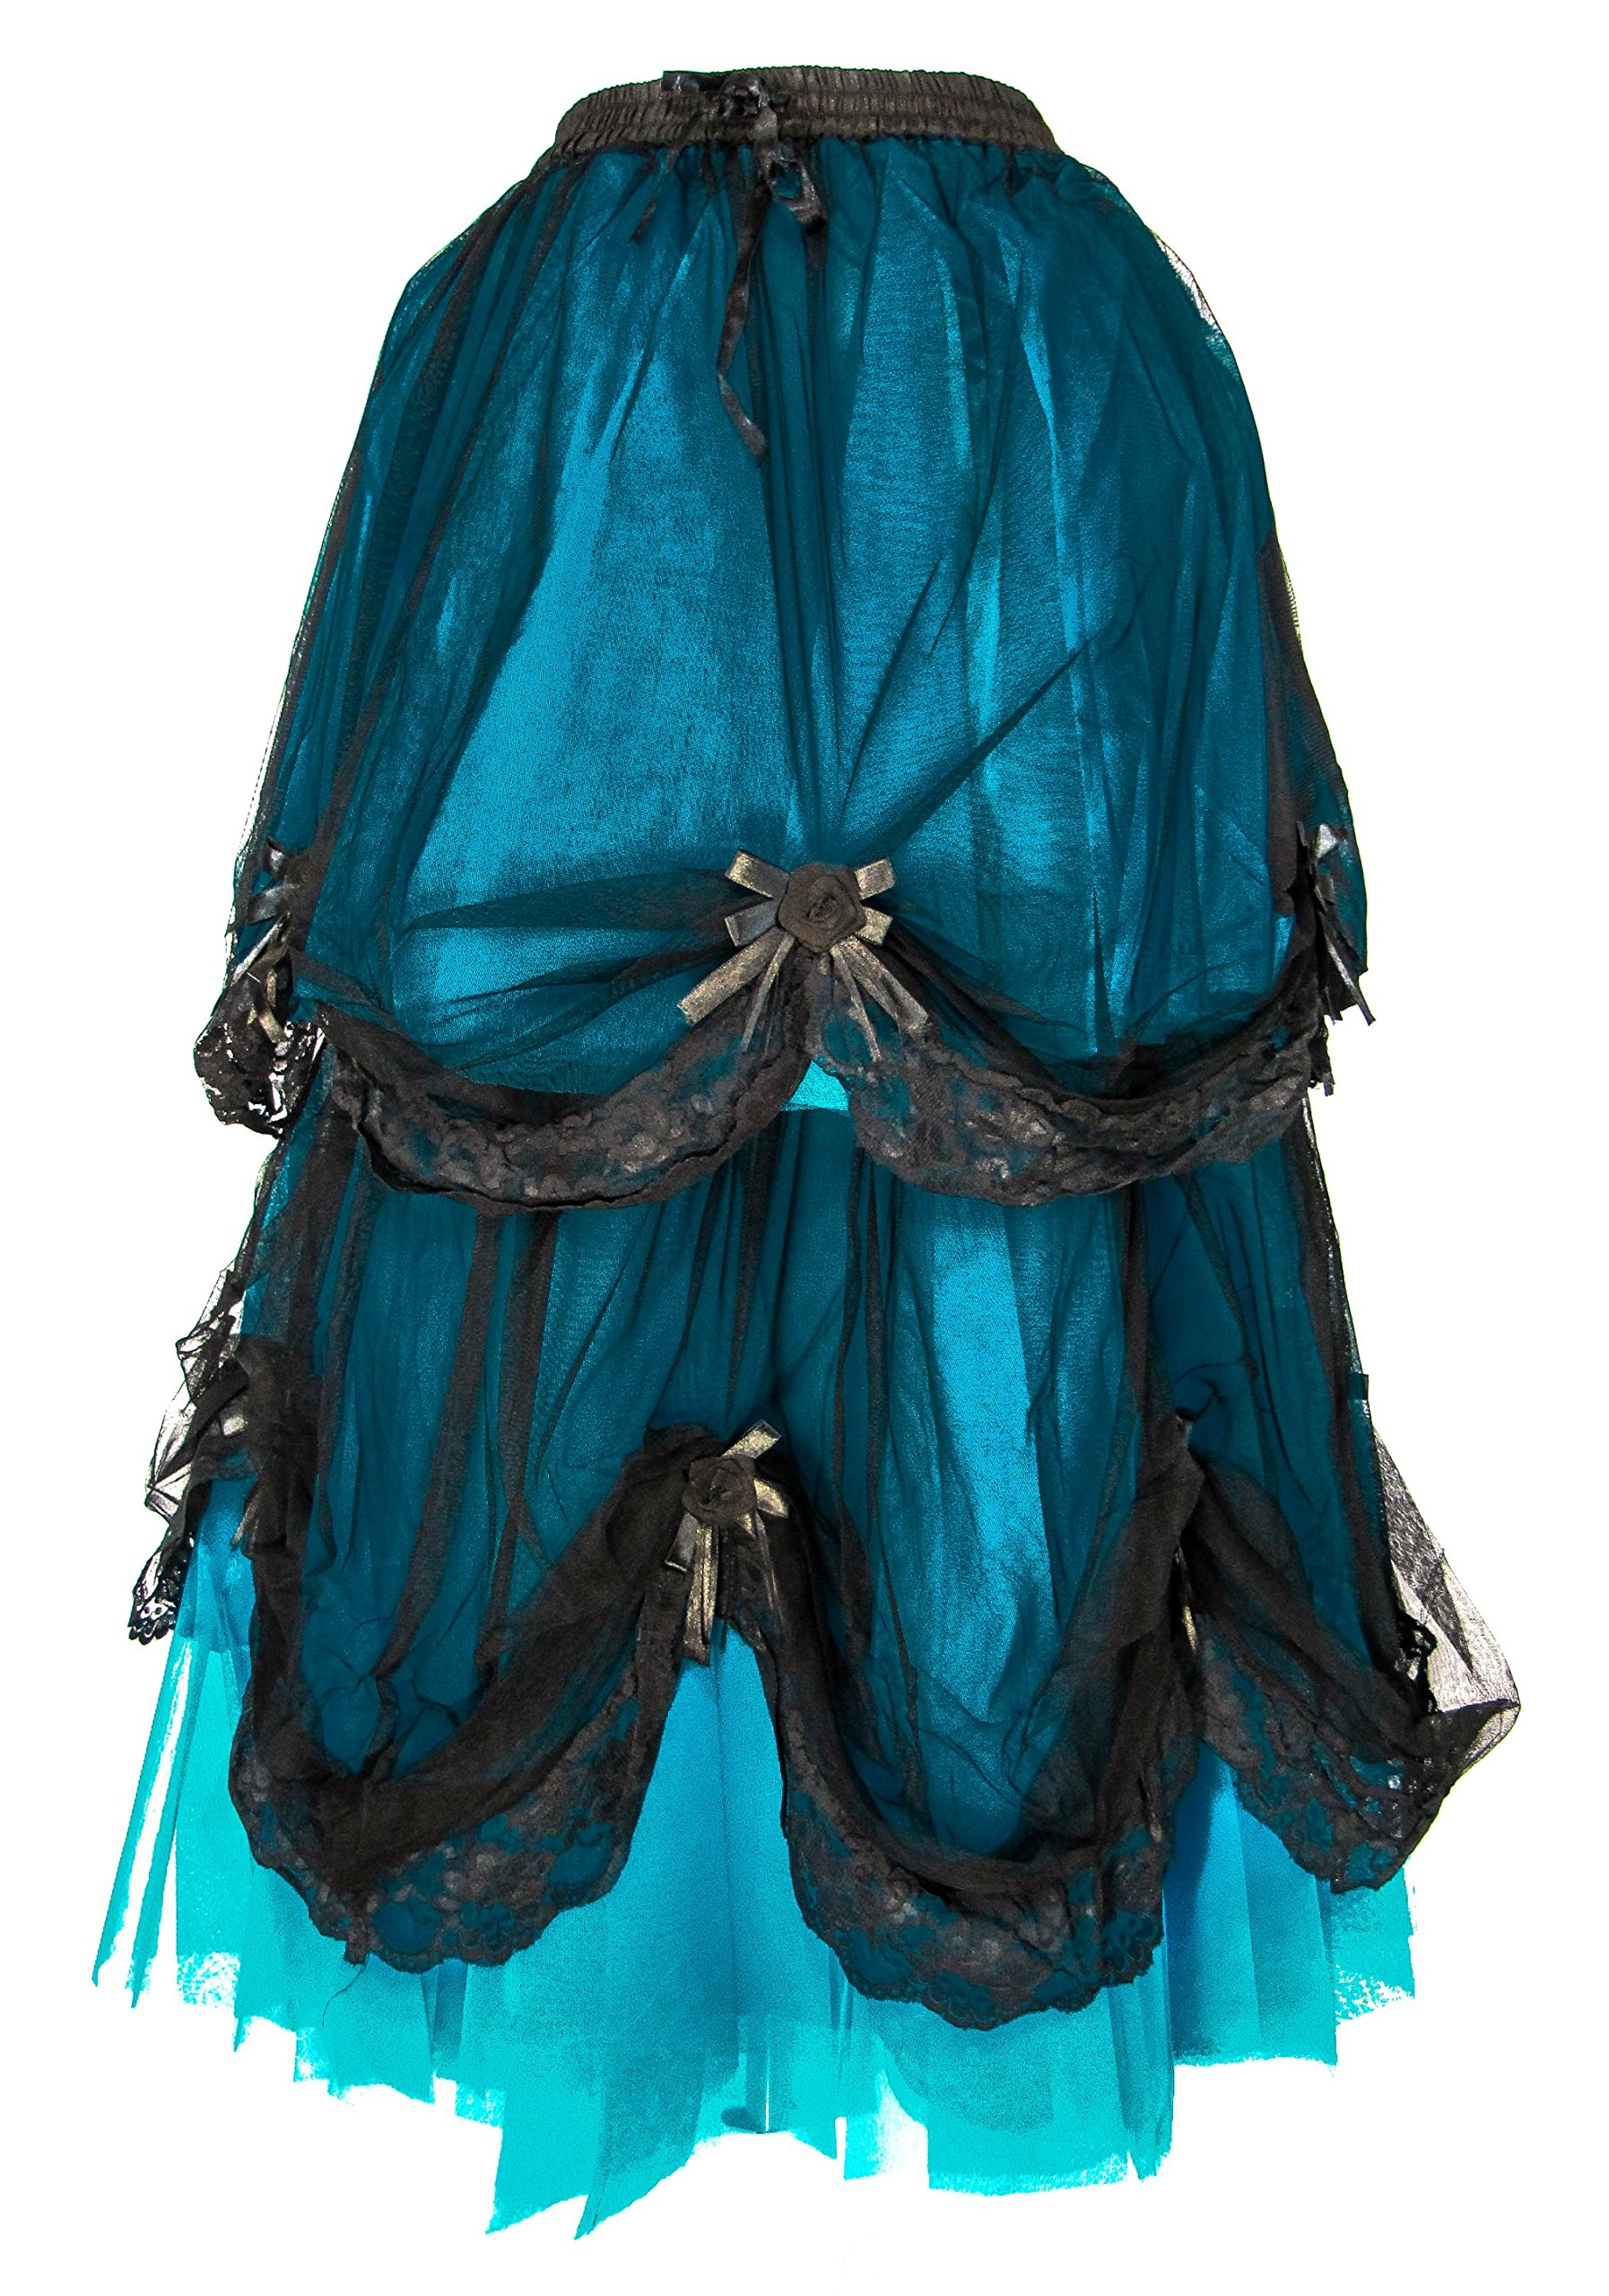 Dark Star Long Black Blue Satin Rose Gothic Medieval Fairytale Skirt S-2X Plus Size (FITS M2X)